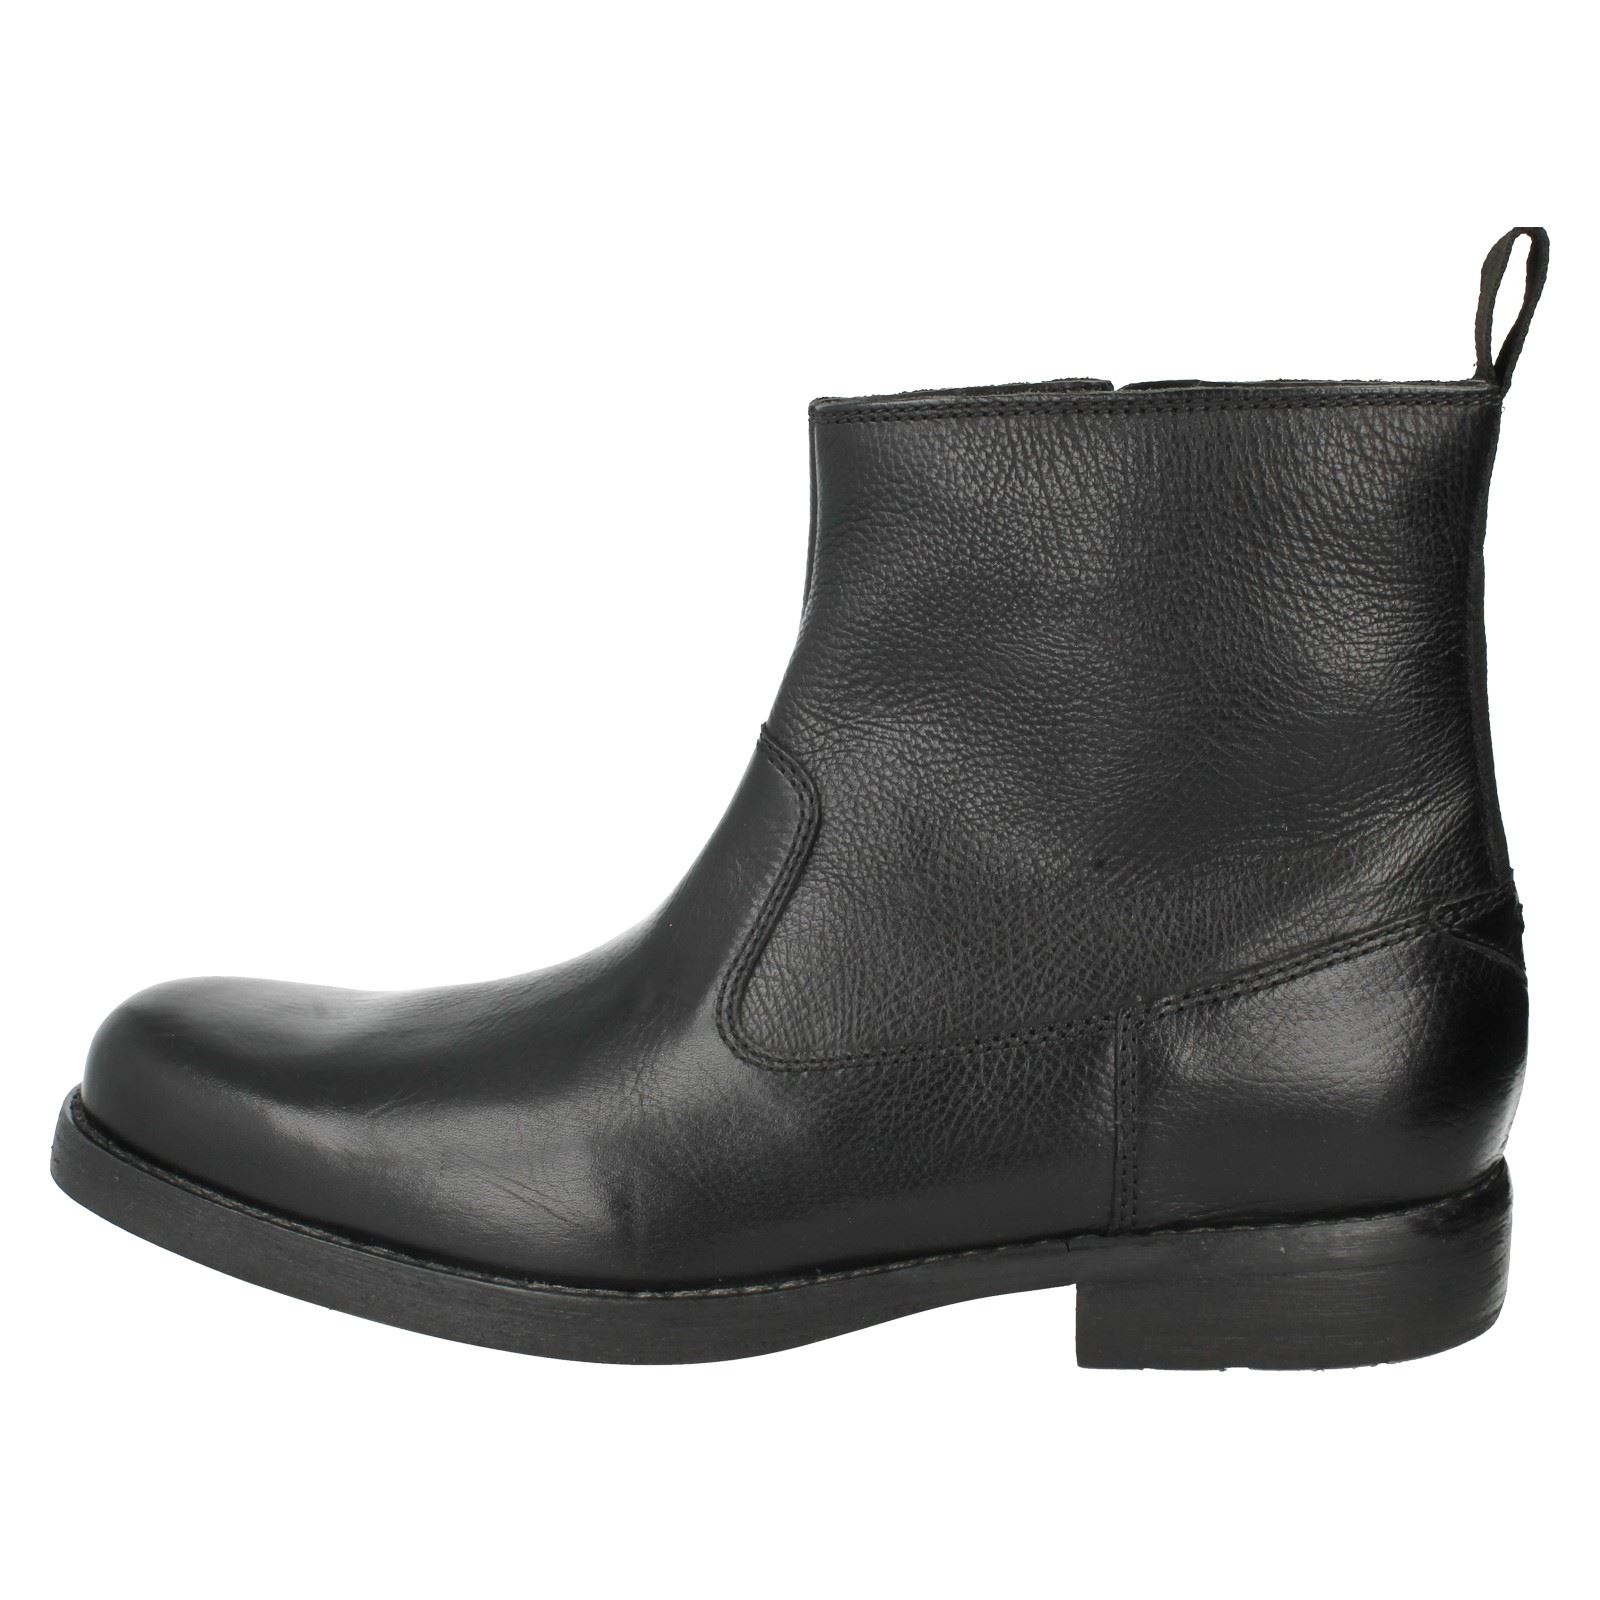 Men's Clarks Leather Smart Boots The Style - Ashburn Zip